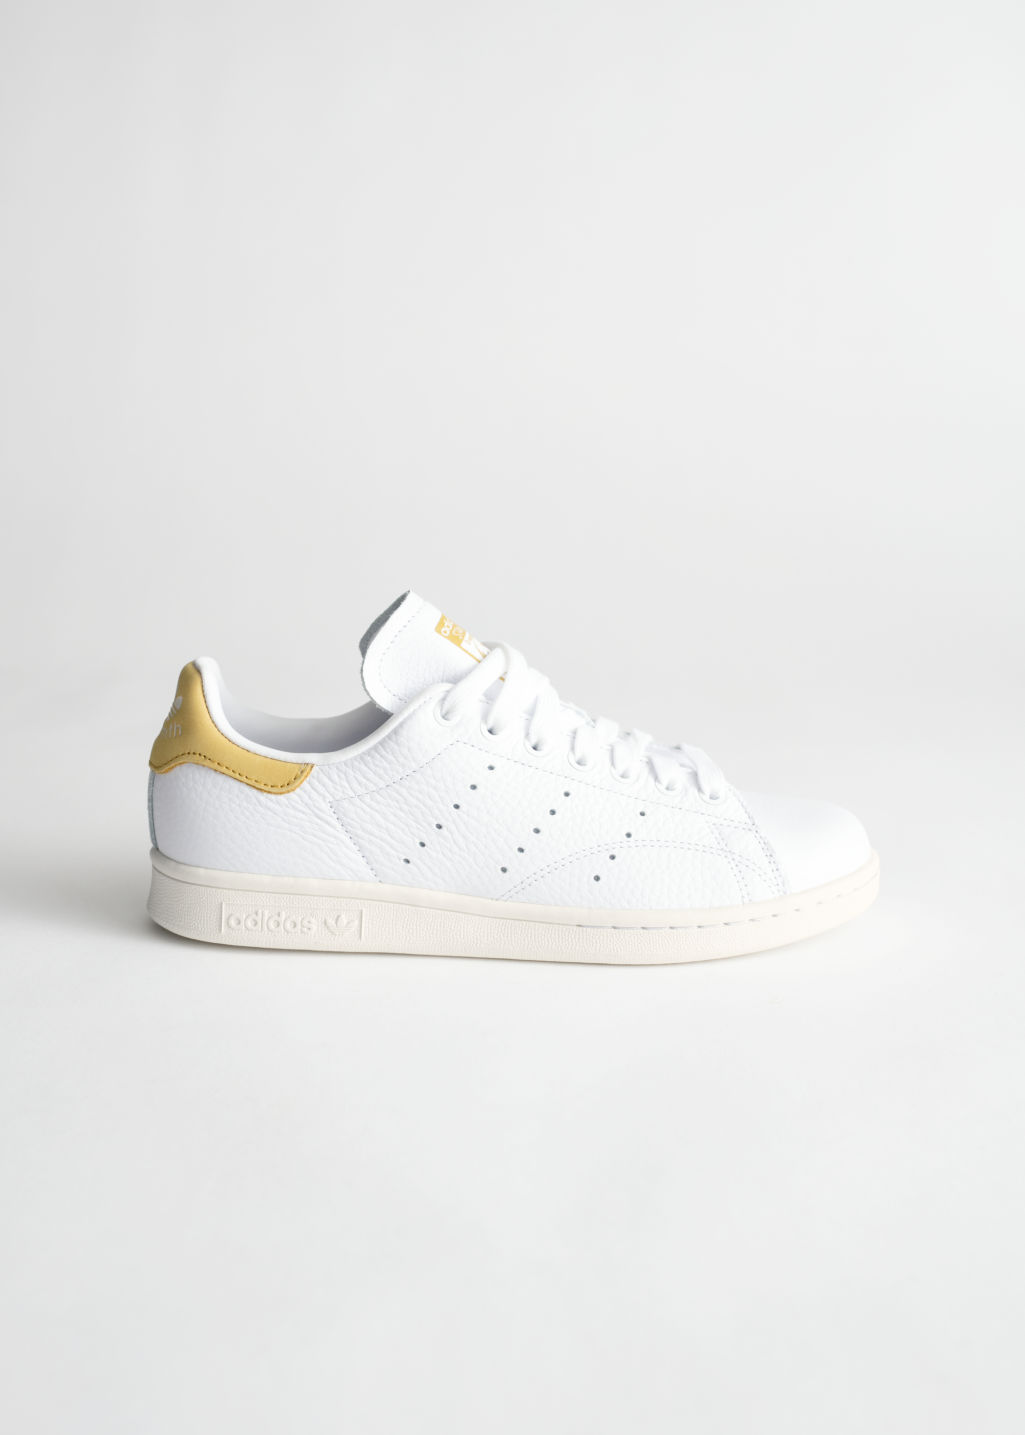 uk availability 0f4e3 d1943 adidas Stan Smith - White - Adidas - & Other Stories